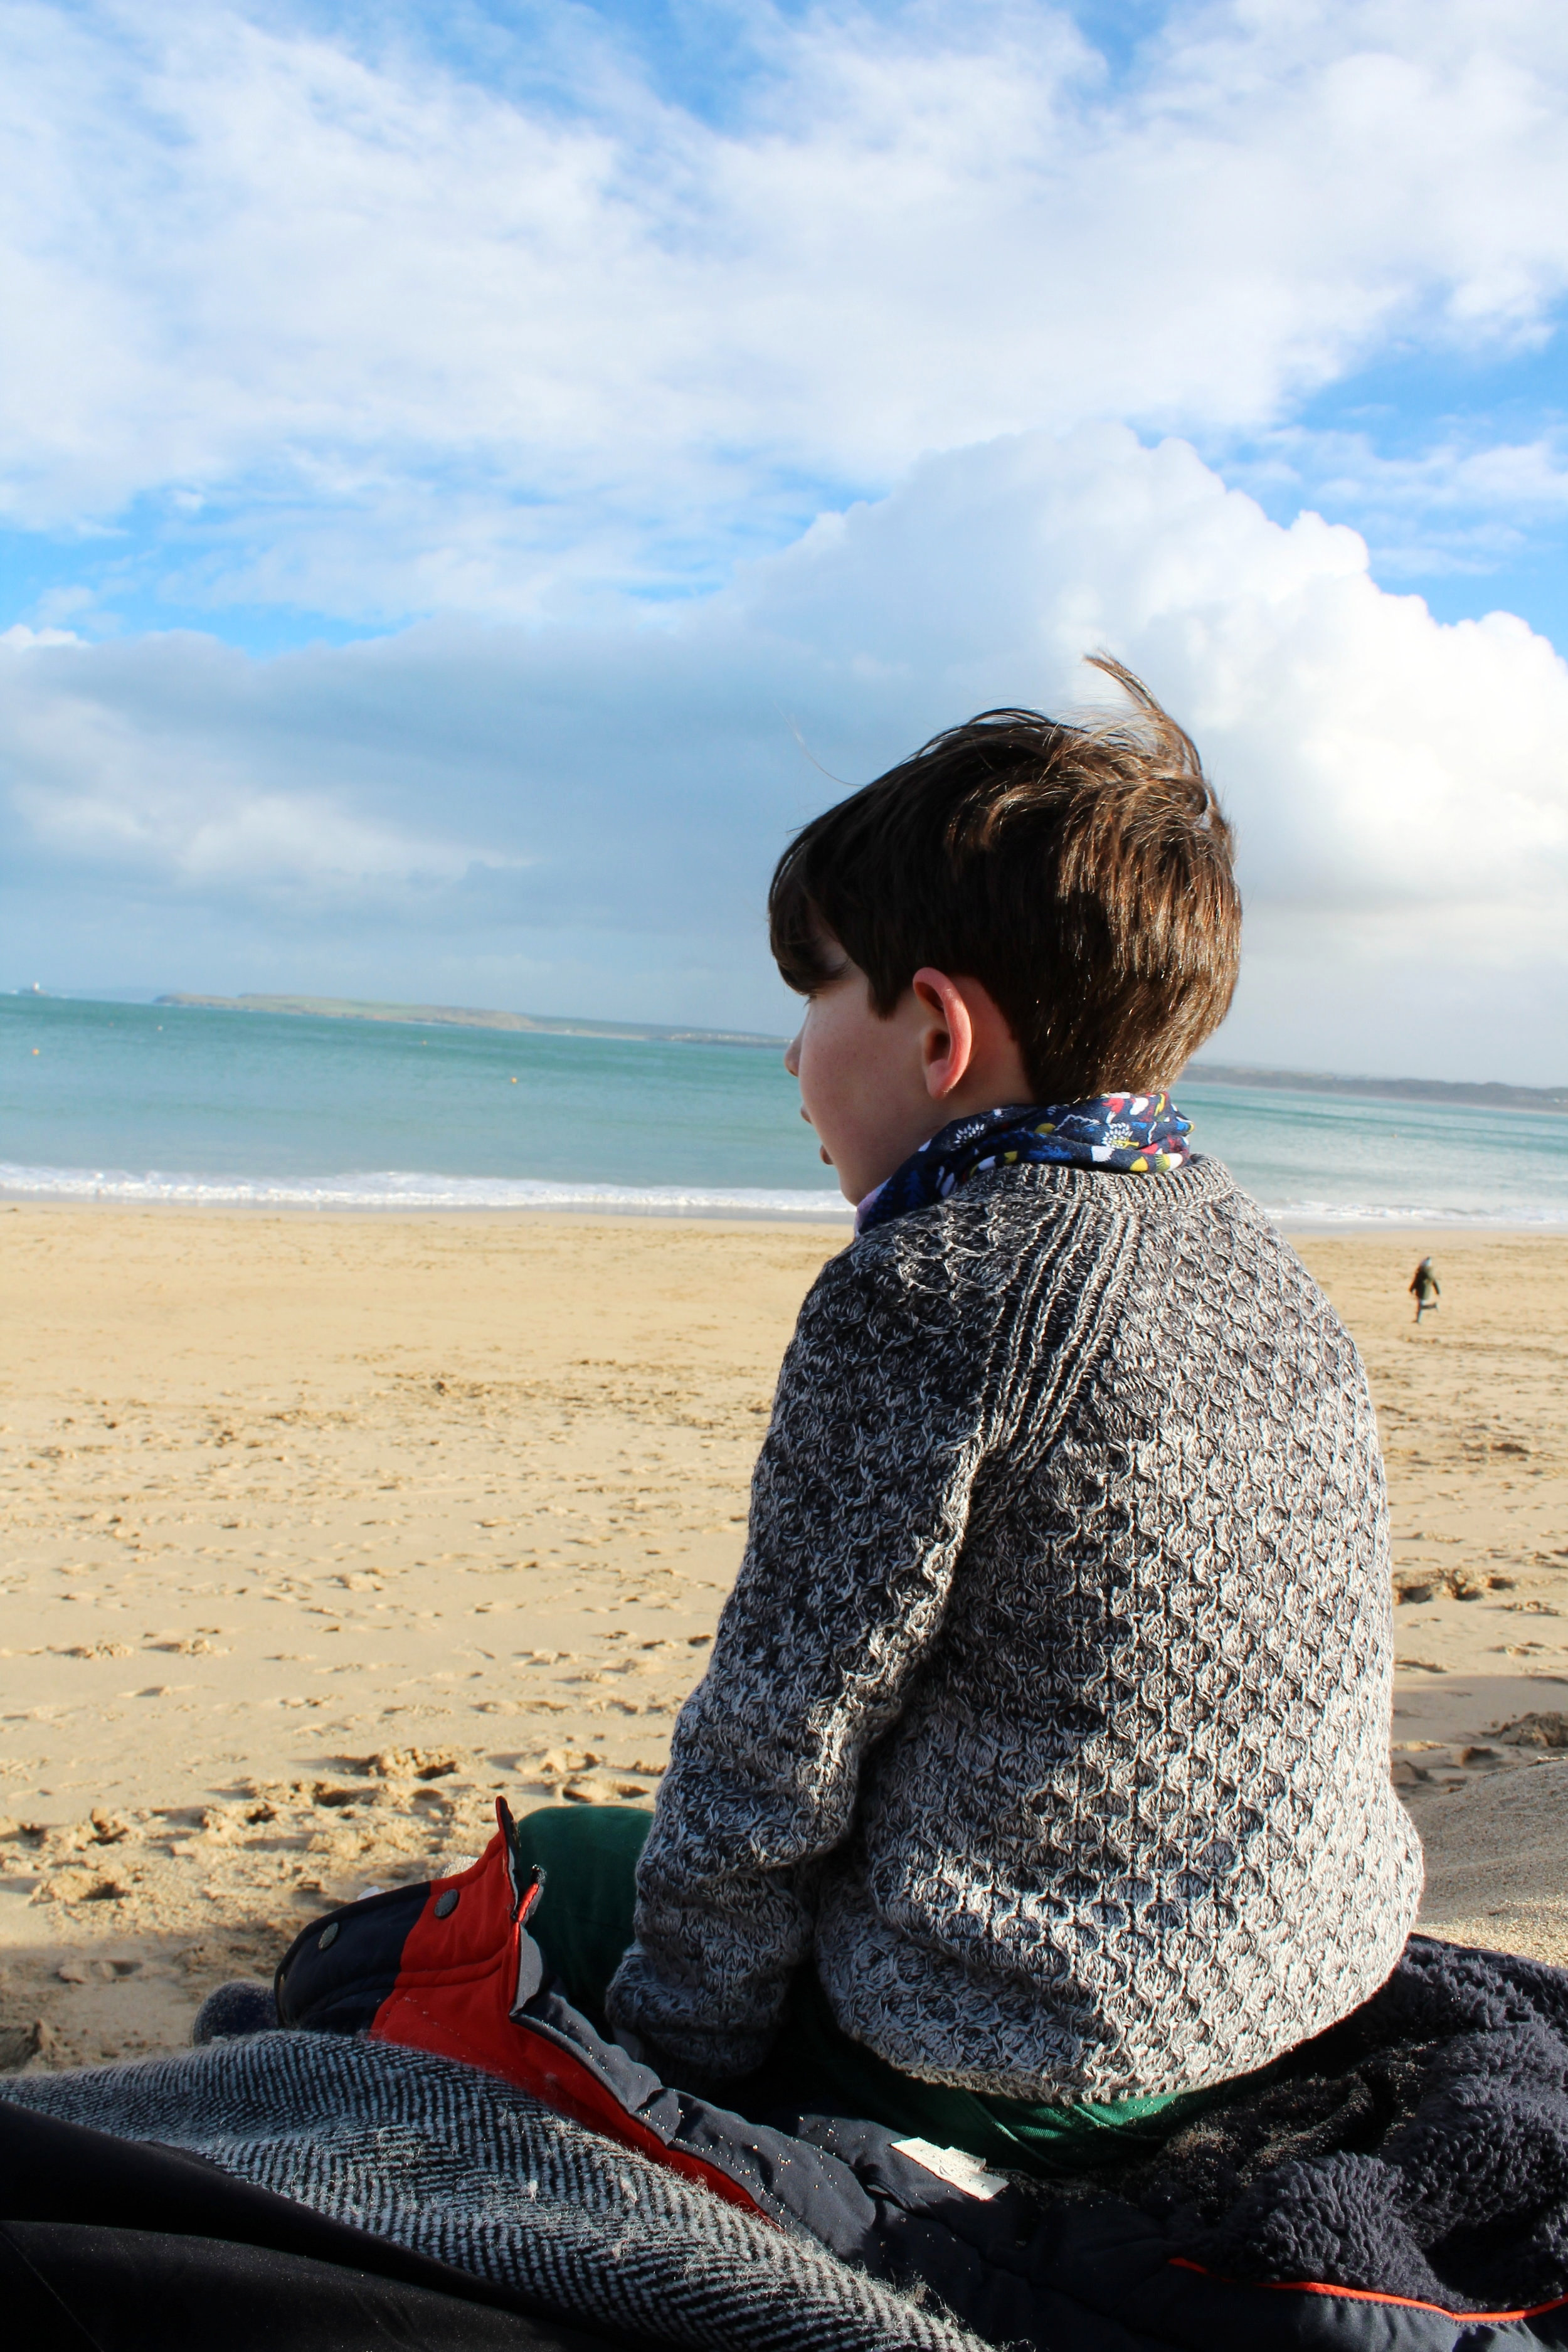 Sitting on the beach wrapped up on a sunny Winter's day equals any Summer one. This was taken on Porthminster beach. This beach has calmer waves and doesn't get deep too quickly. On low tide you can walk across the sand straight to the town of St Ives.